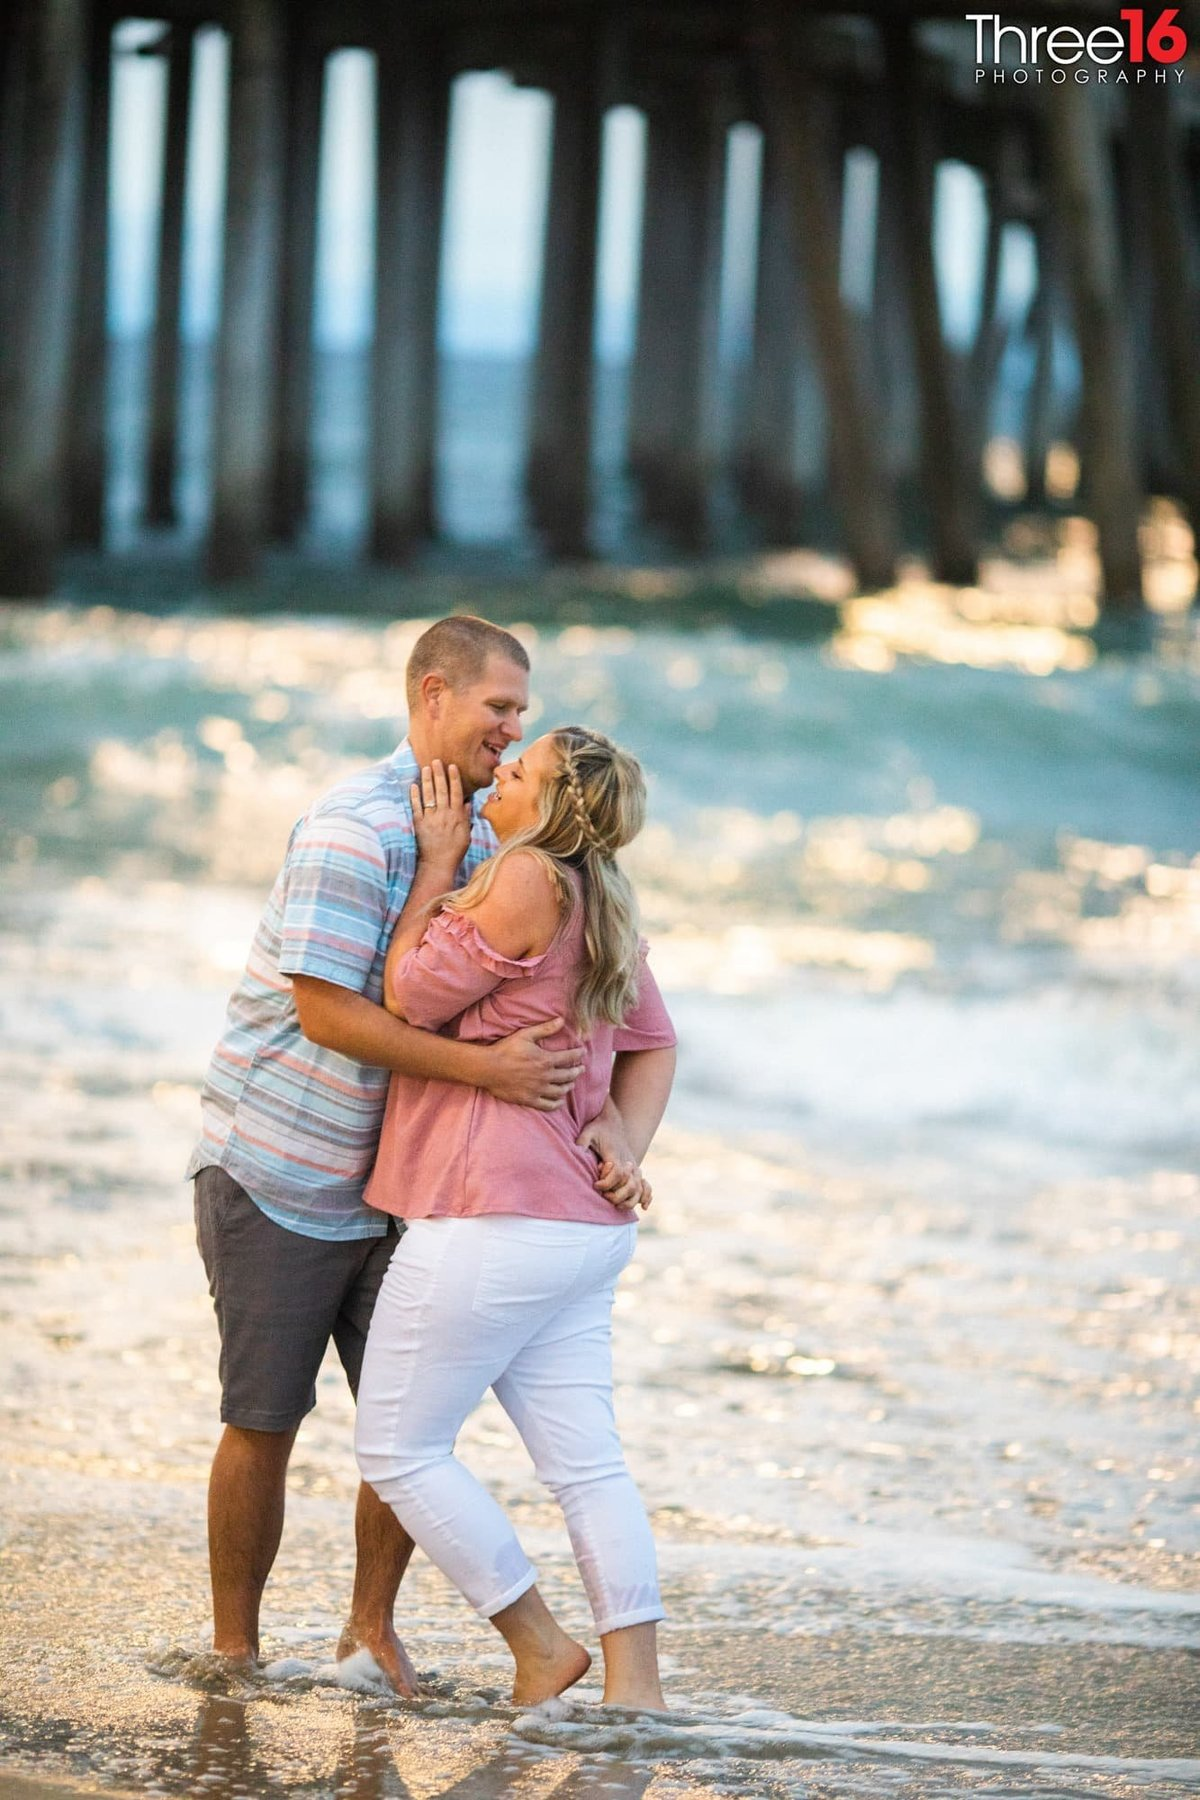 Huntington Beach Pier Engagement Photos Beach Weddings